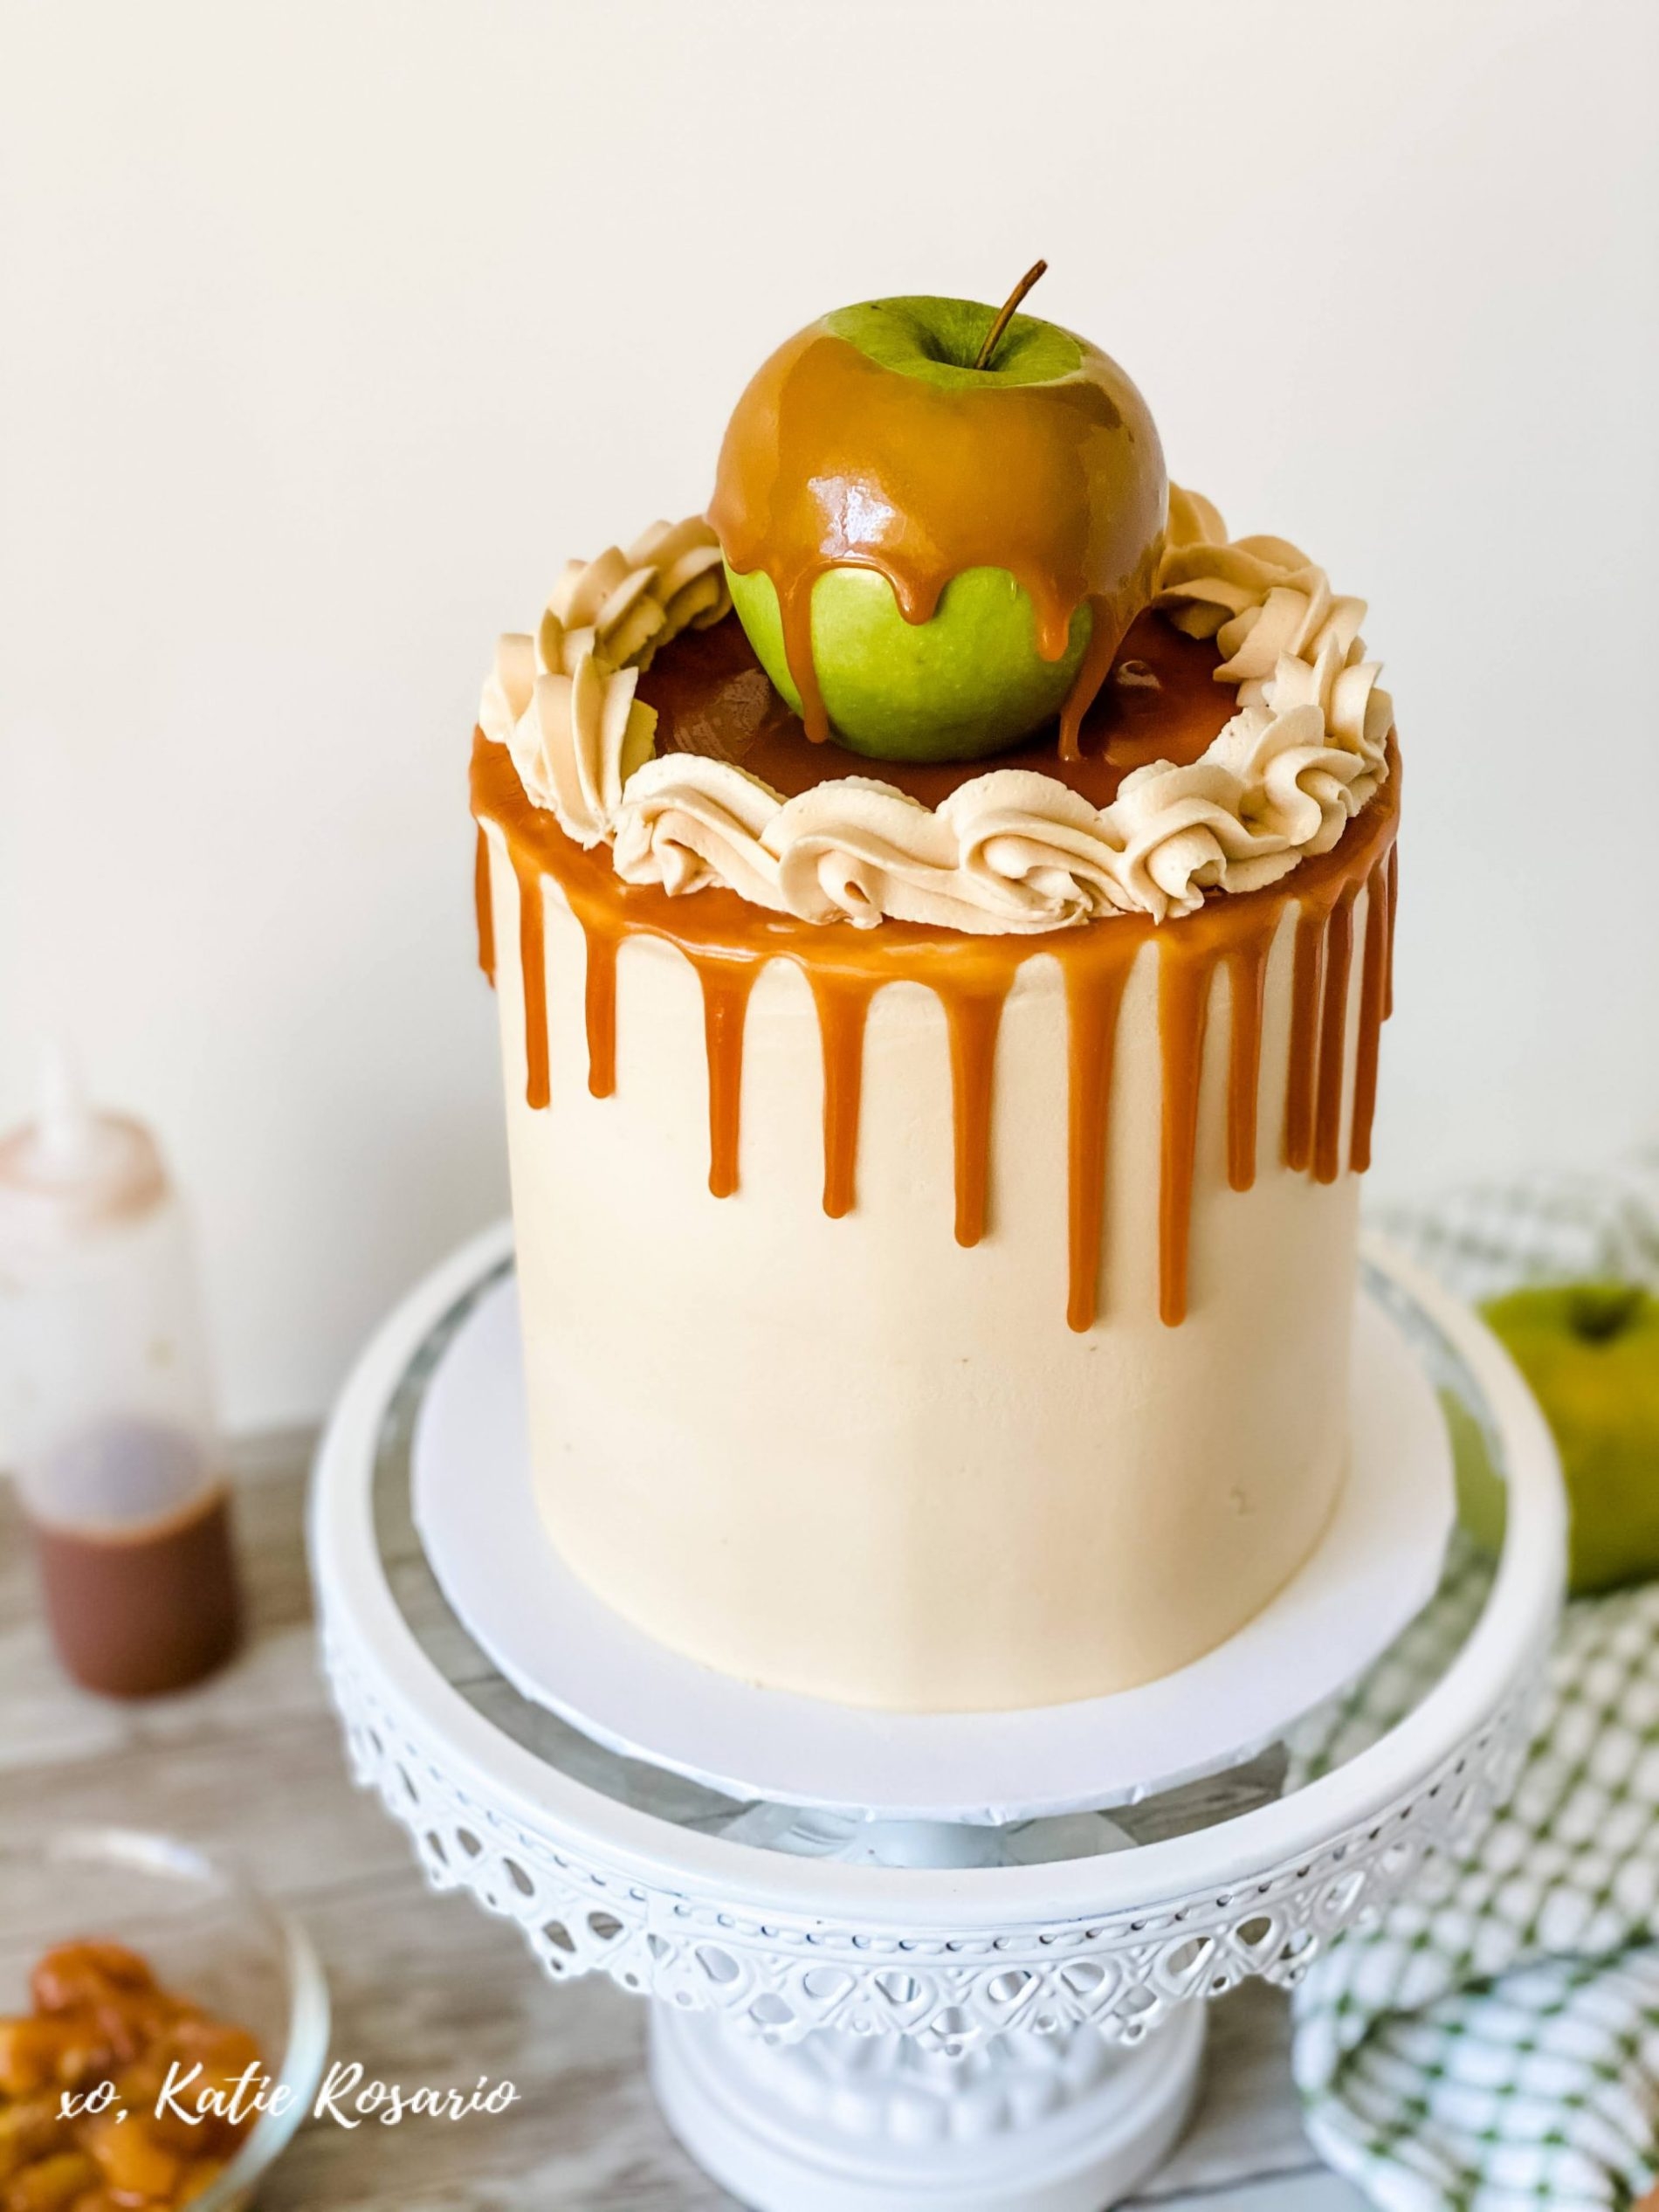 Learn how to make this insanely delicious Caramel Apple Cake. Kick-off apple season with this delicious Caramel Apple Cake! A caramel cake made with apple pie filling, paired with caramel buttercream and caramel drizzle. This Caramel Apple Cake has a beautiful balance of sweet, salty, and full of warm fall spices.